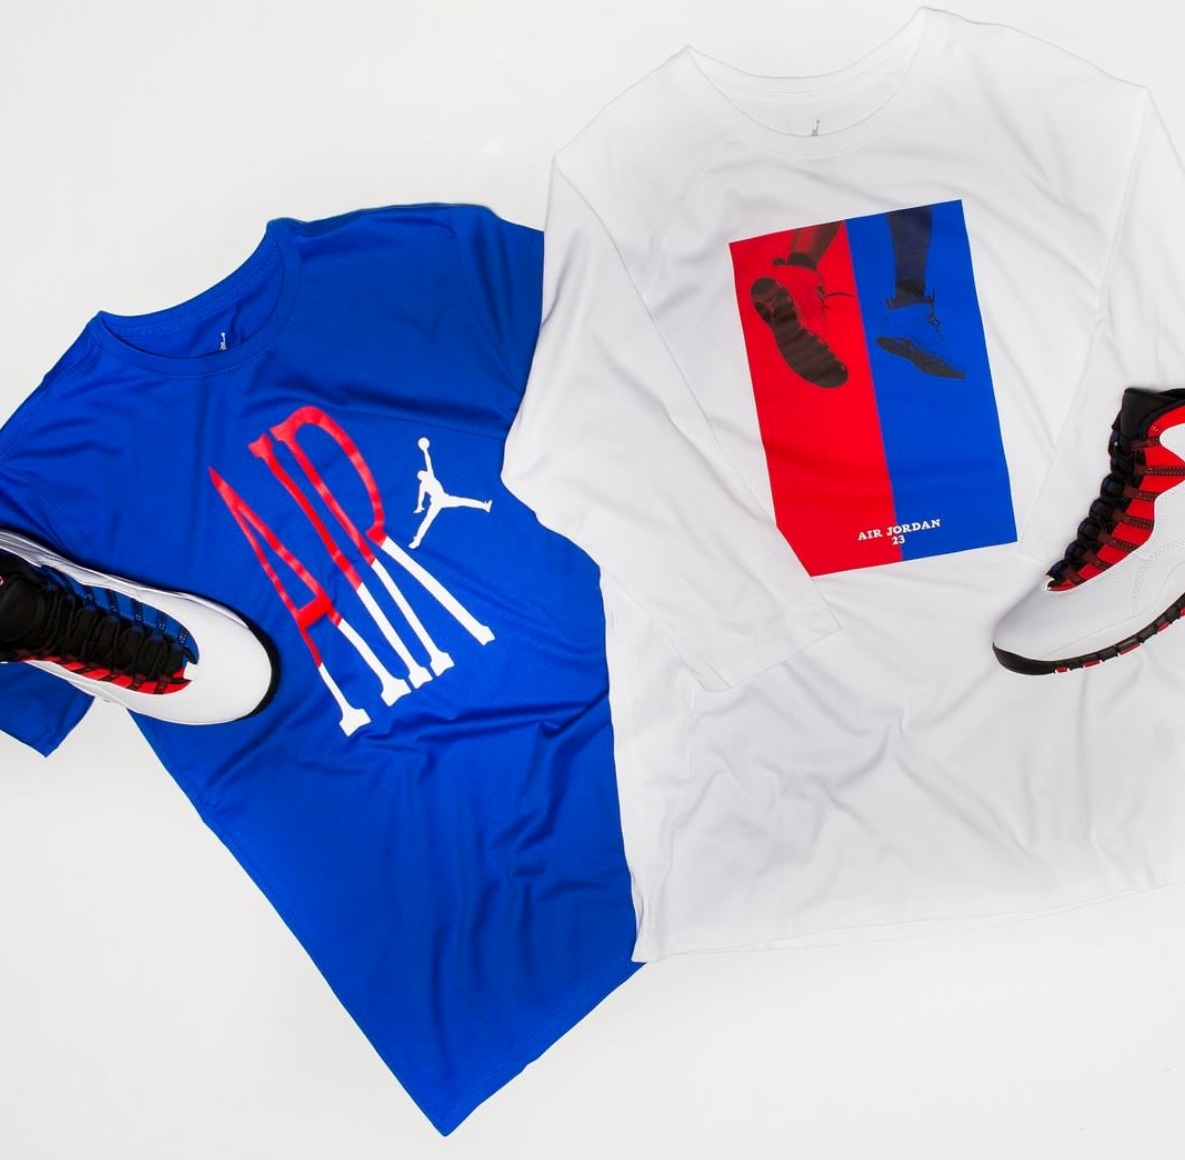 air-jordan-10-westbrook-shirts